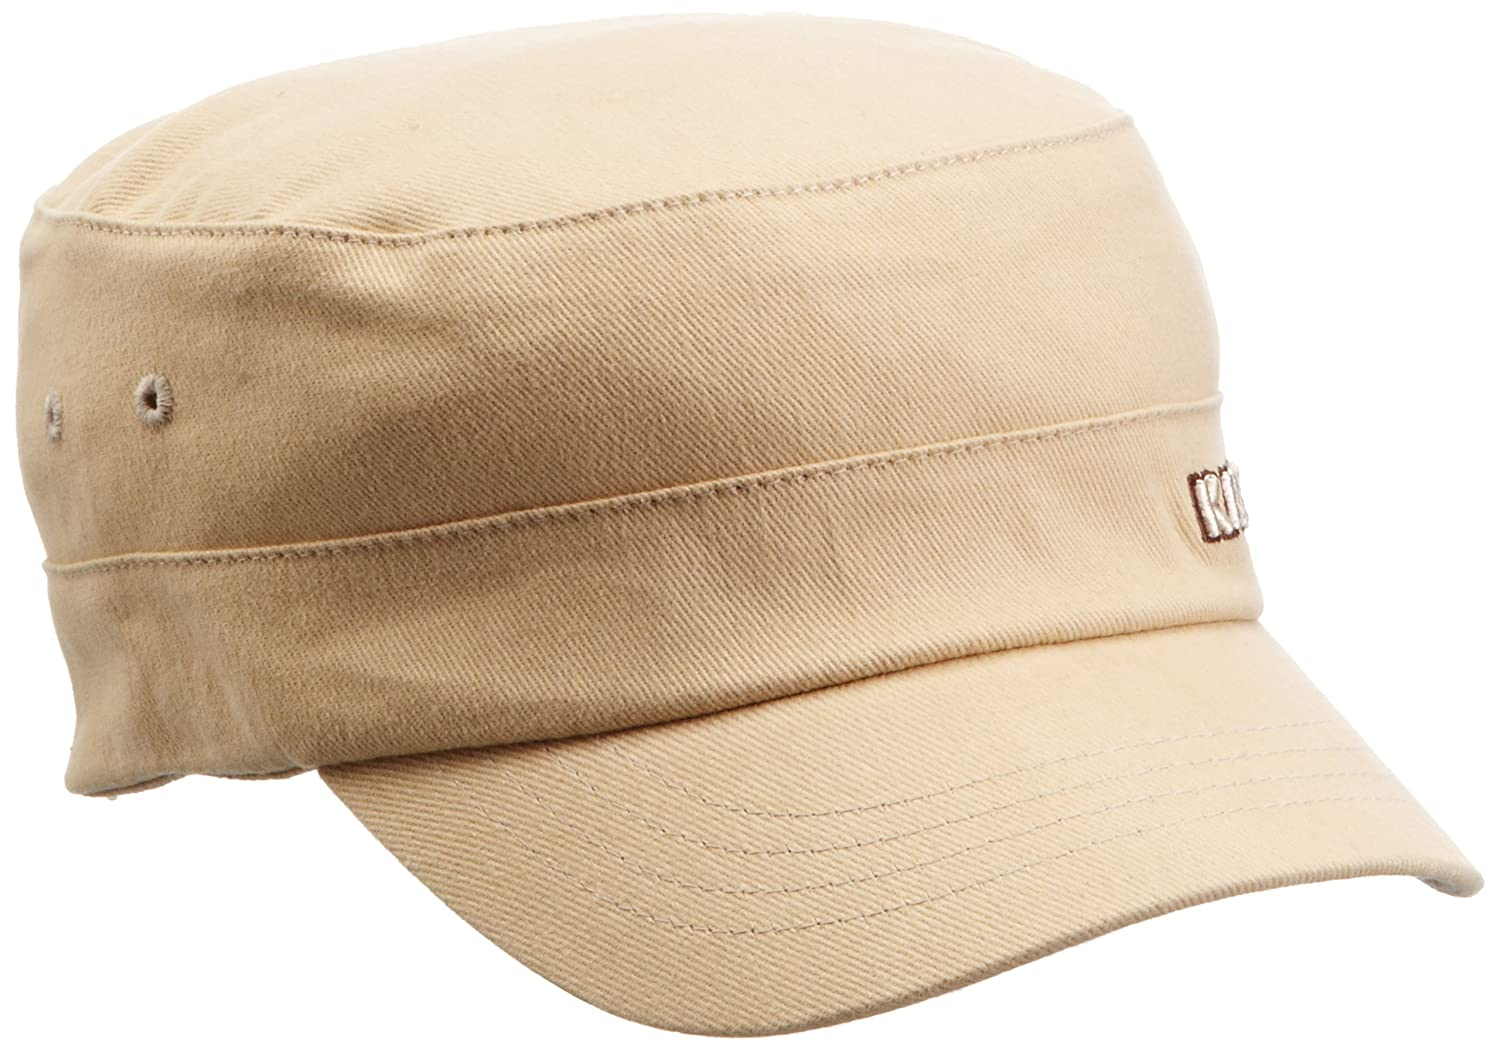 29b27b8a182 Kangol Cotton Twill Army Cap  Amazon.co.uk  Clothing